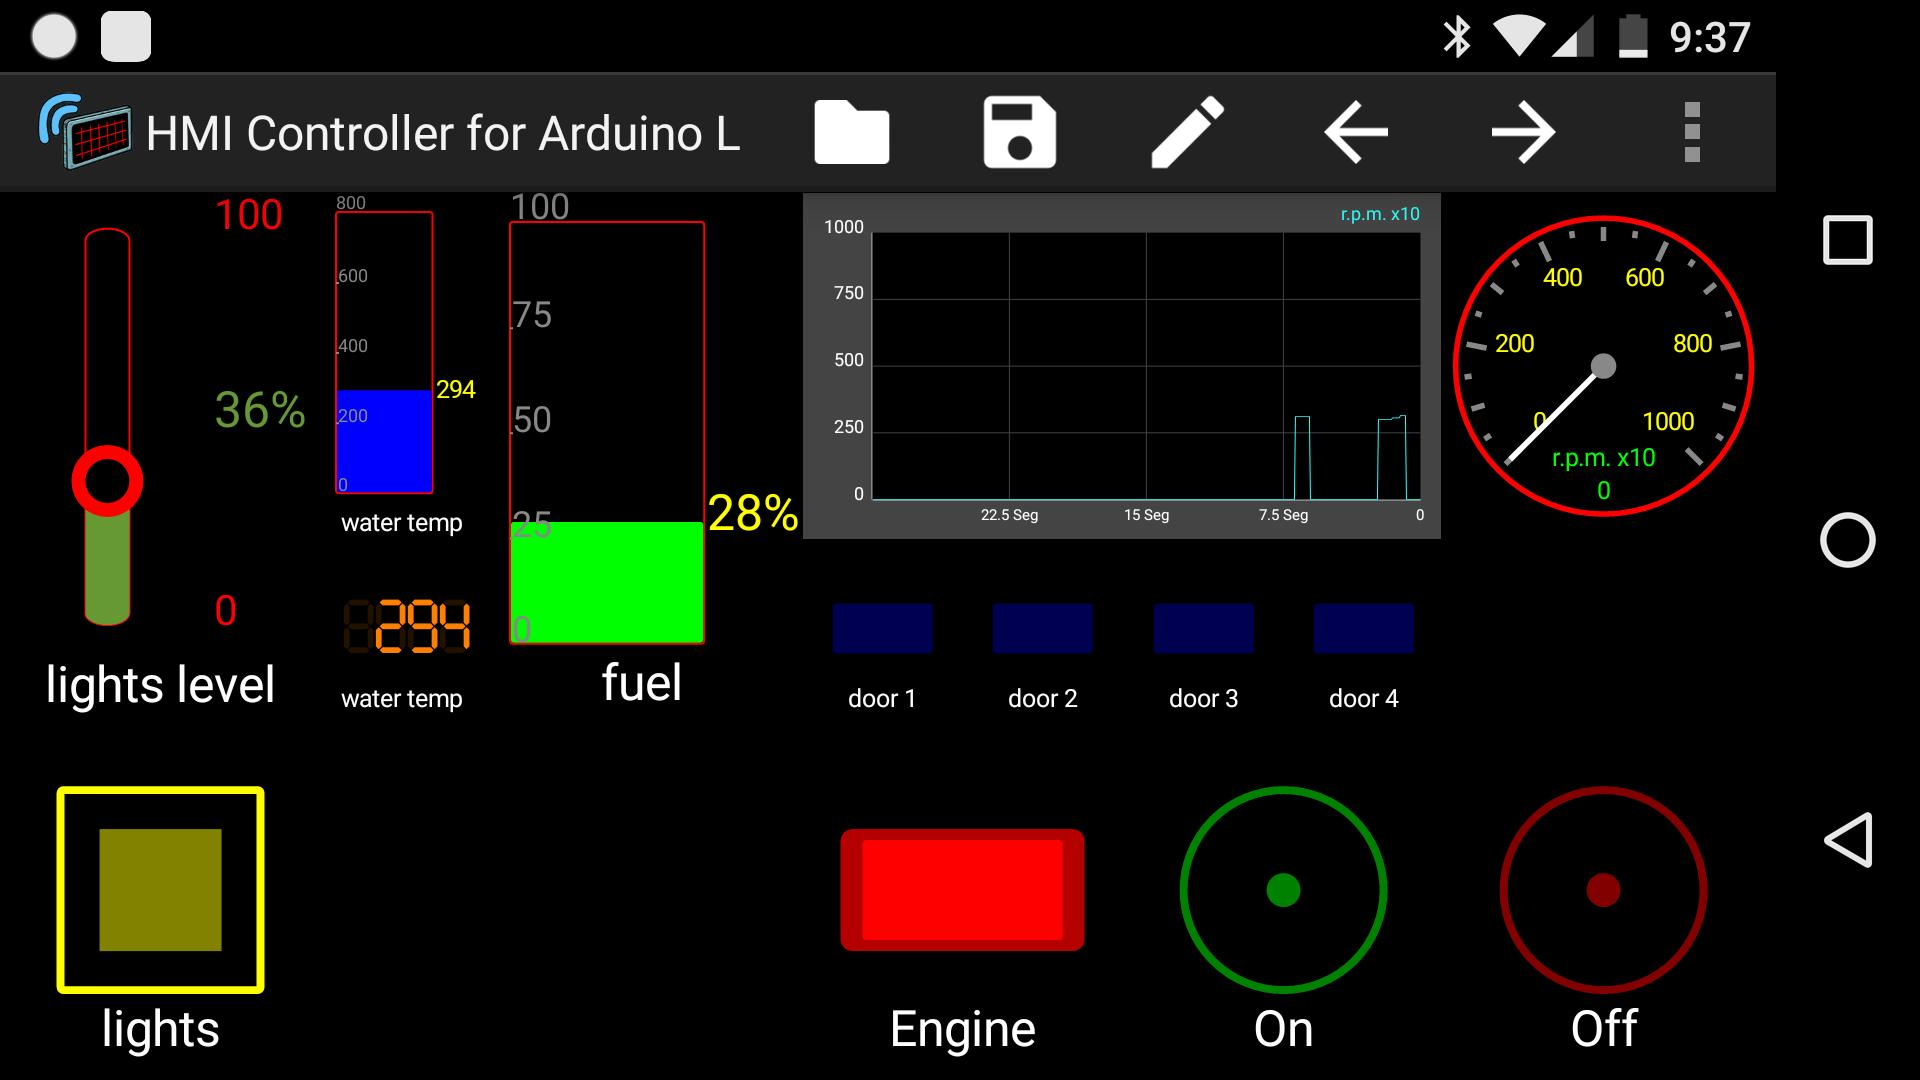 HMI Controller for Arduino L for Android - APK Download